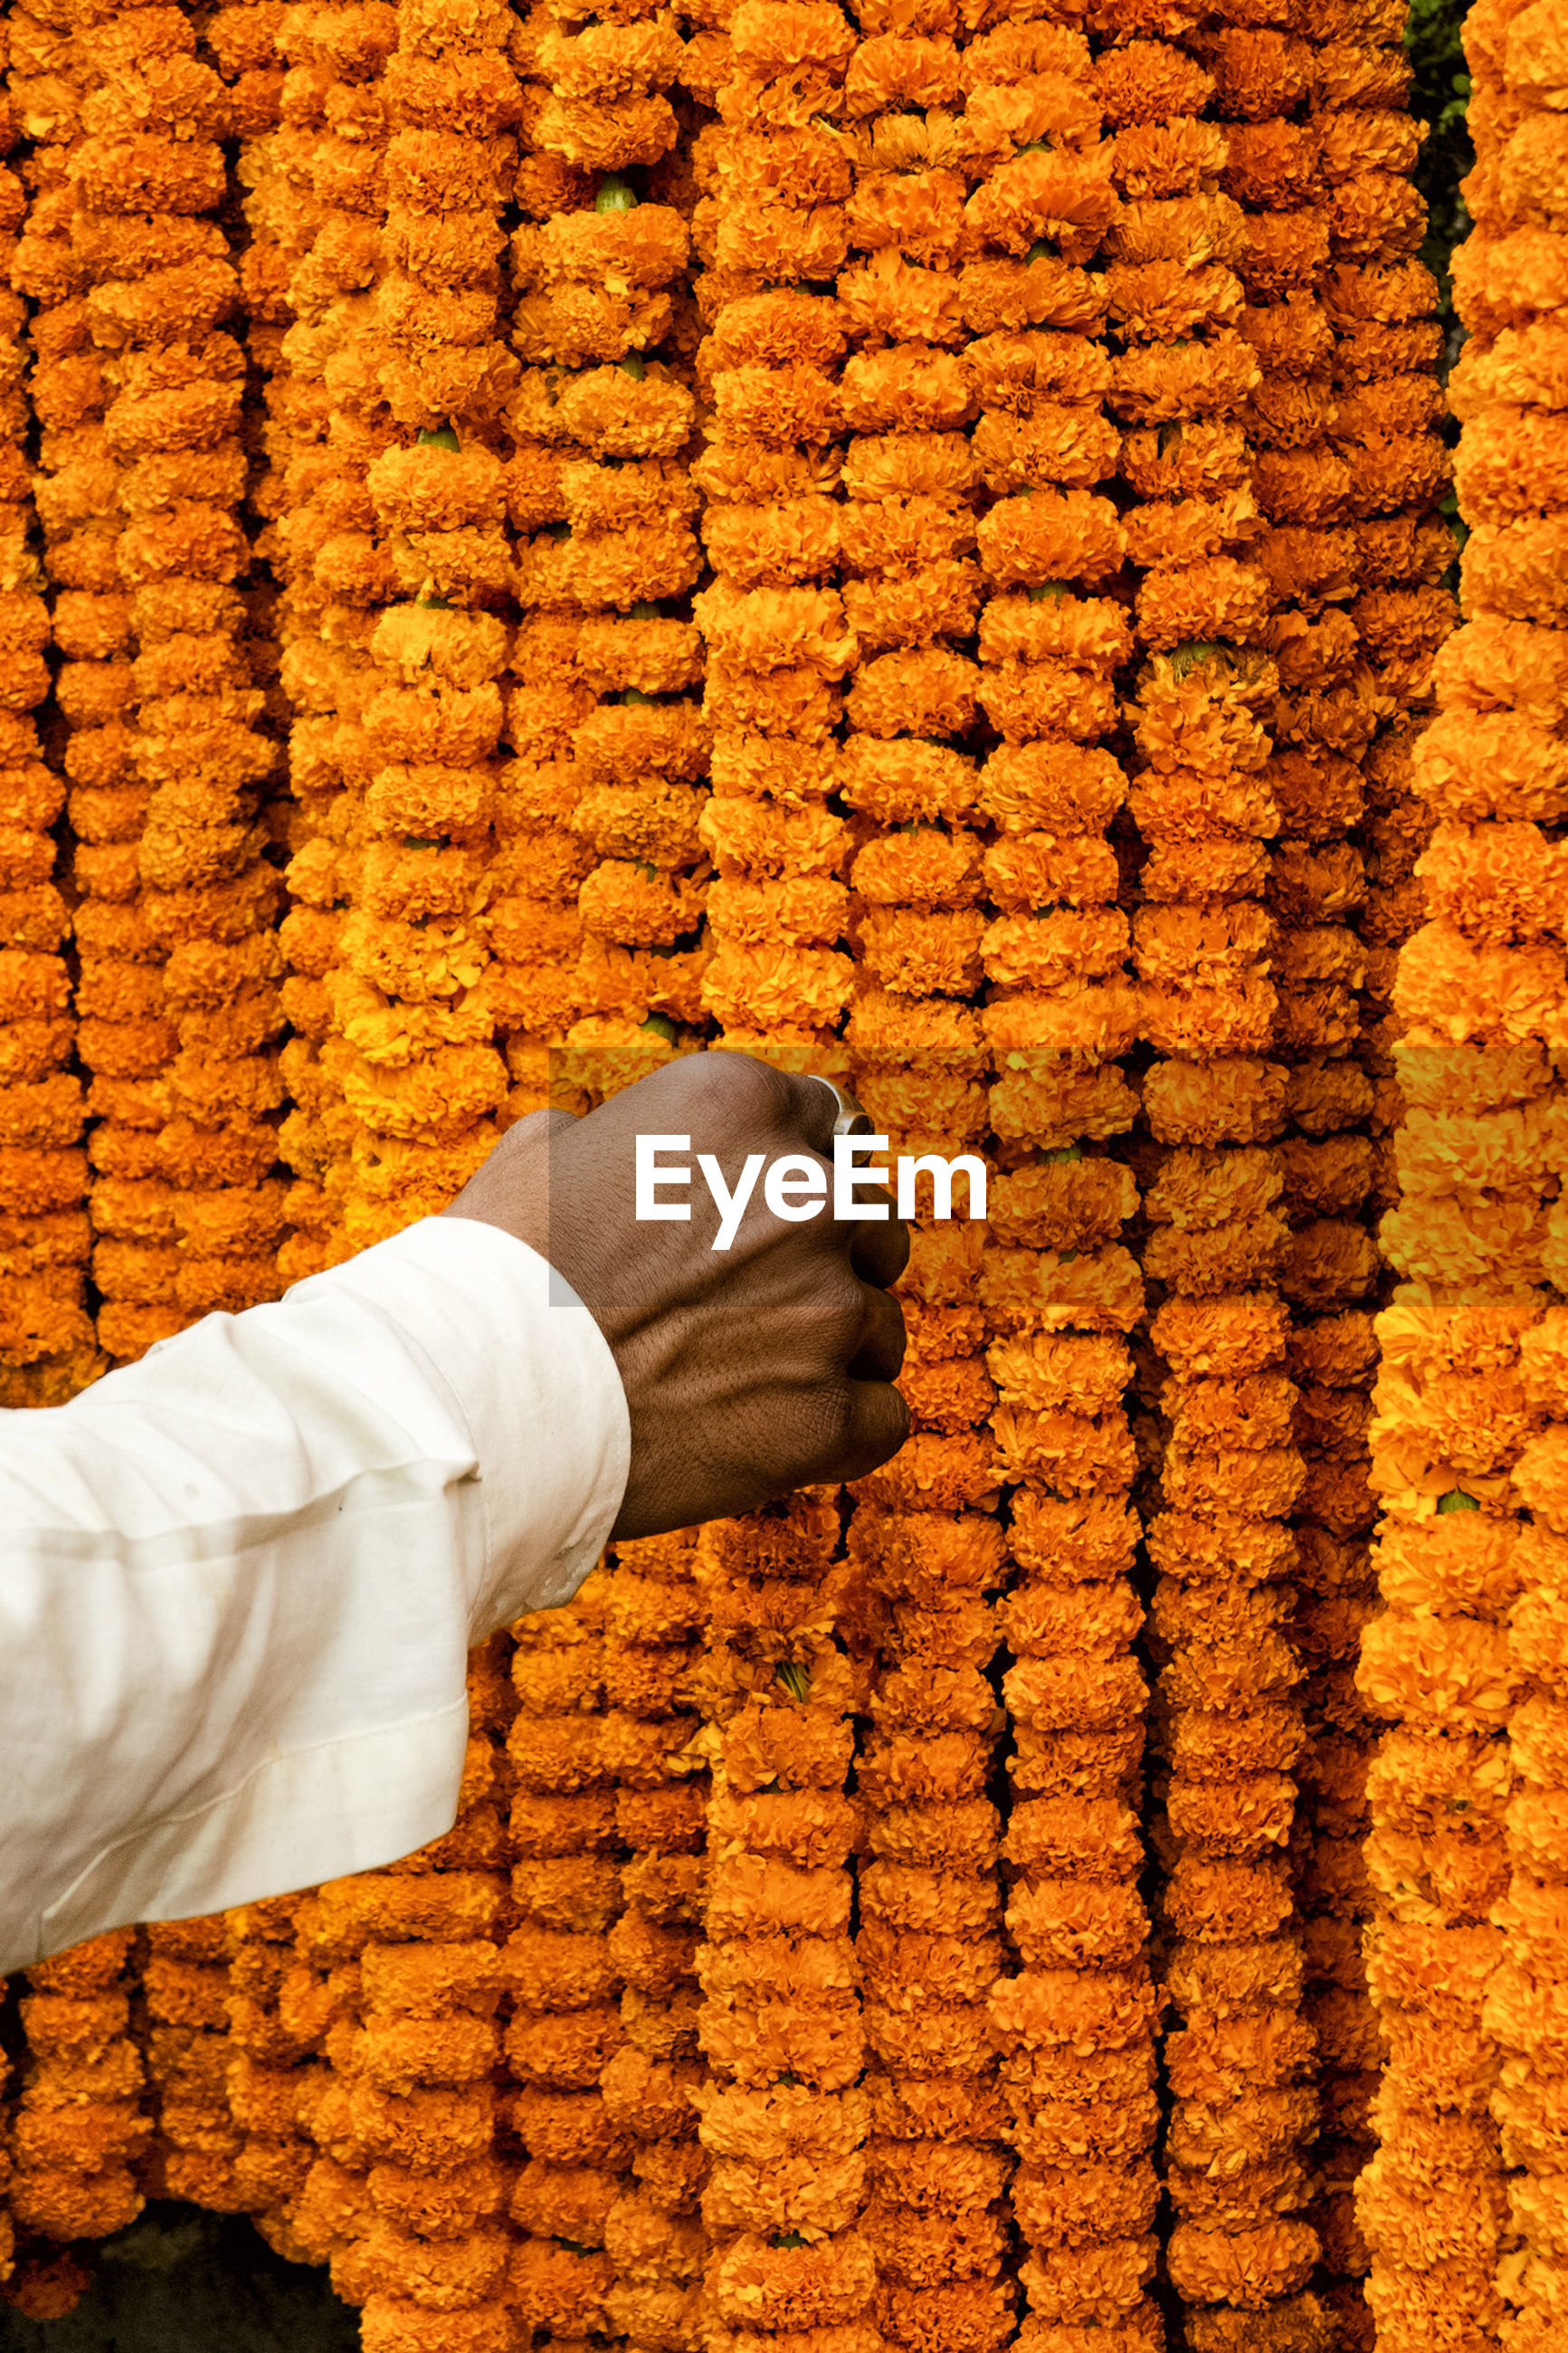 Cropped image of hand touching marigold garlands at market